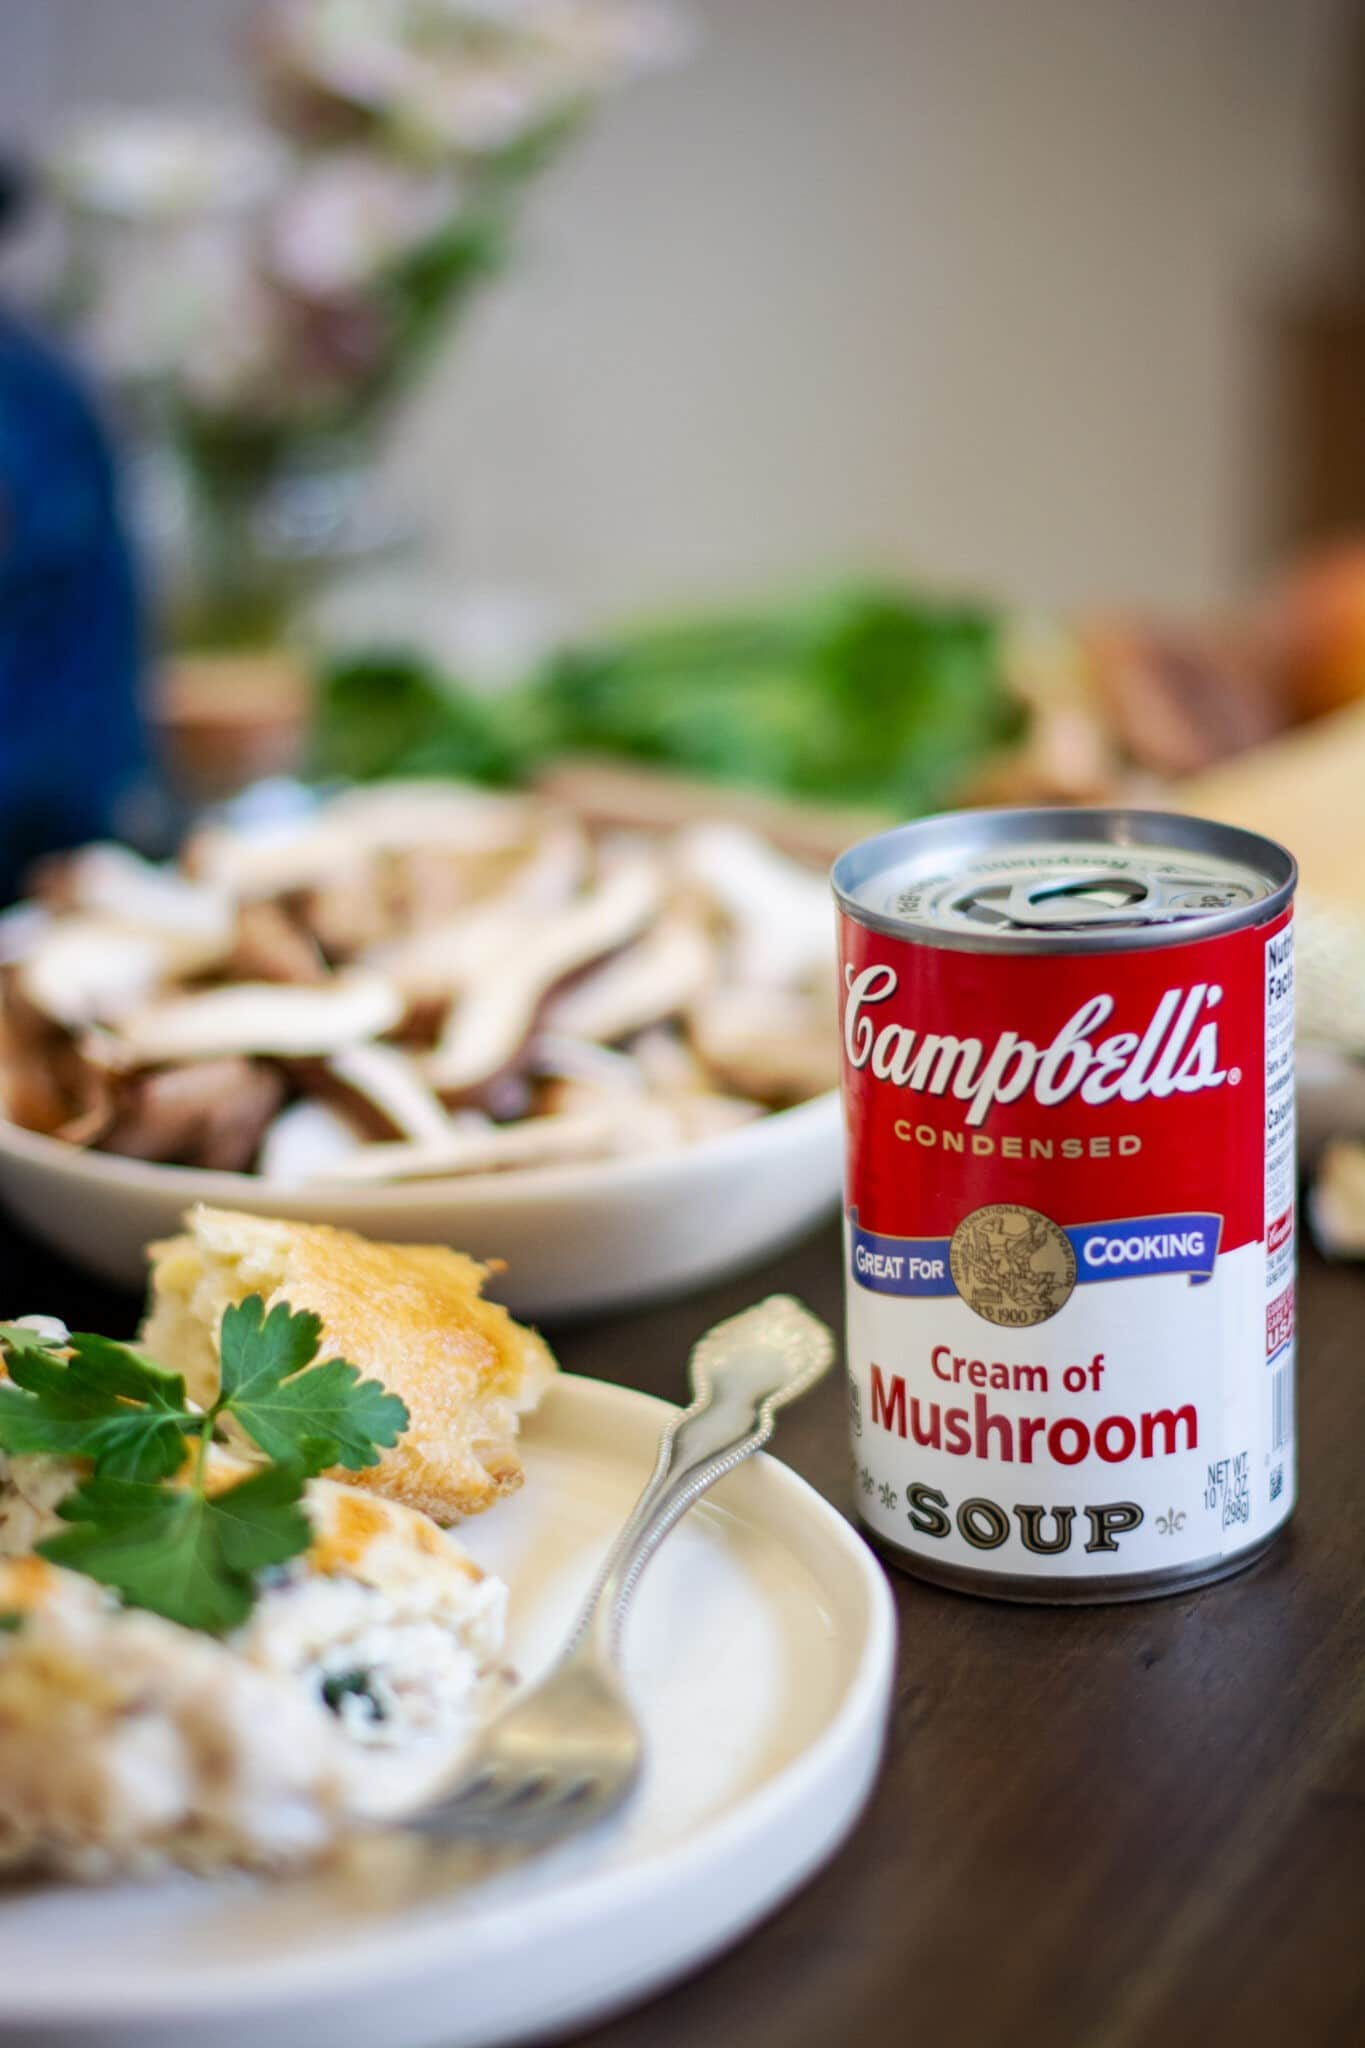 Manicotti on white plate with a can of Campbells Cream of Mushroom Soup on wood table